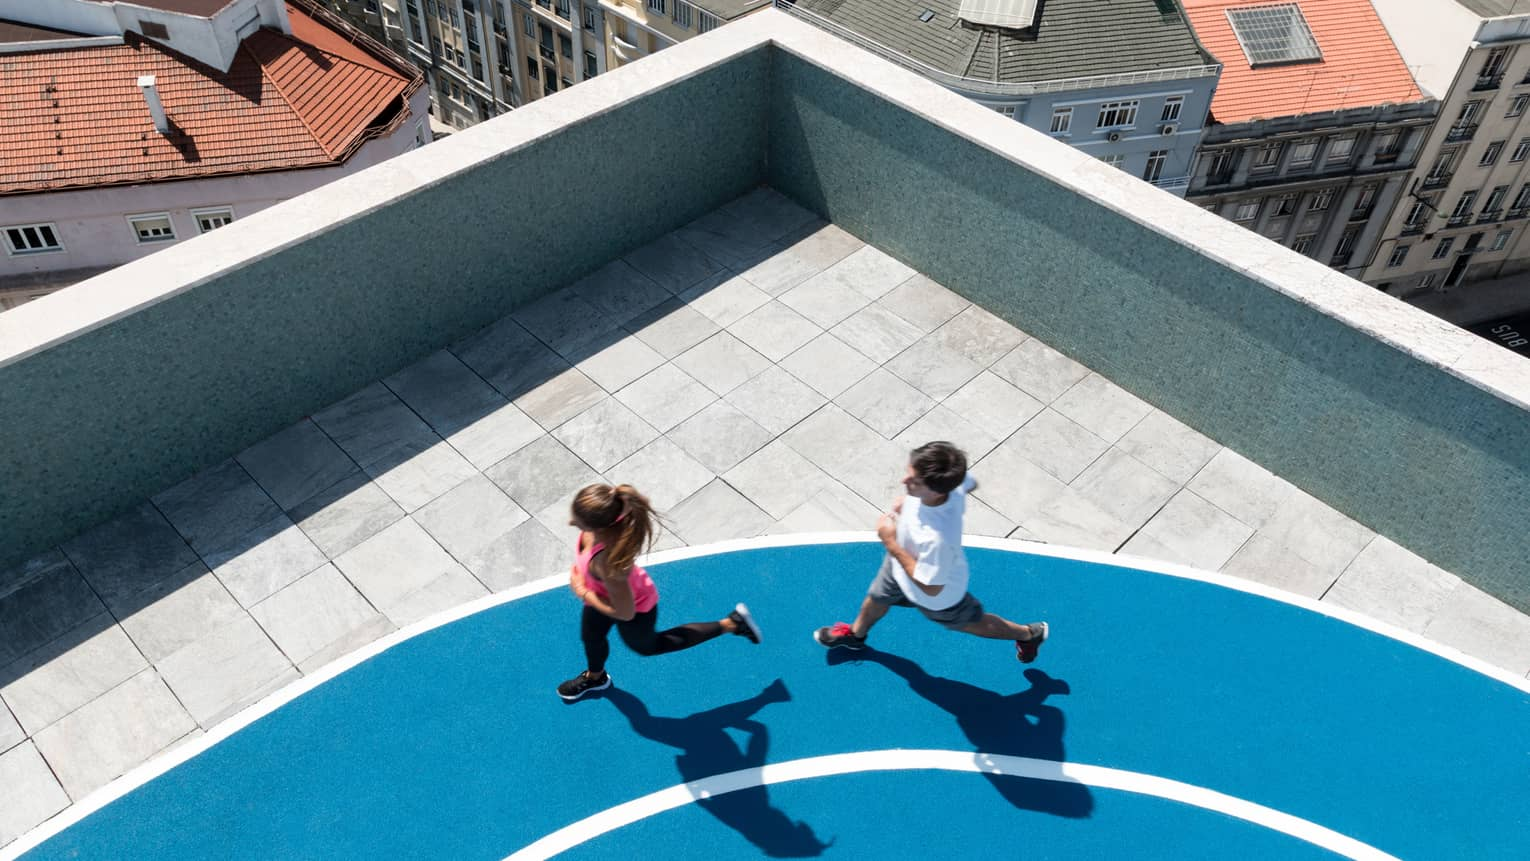 Aerial view of man and woman running on blue jogging track, city rooftops seen below